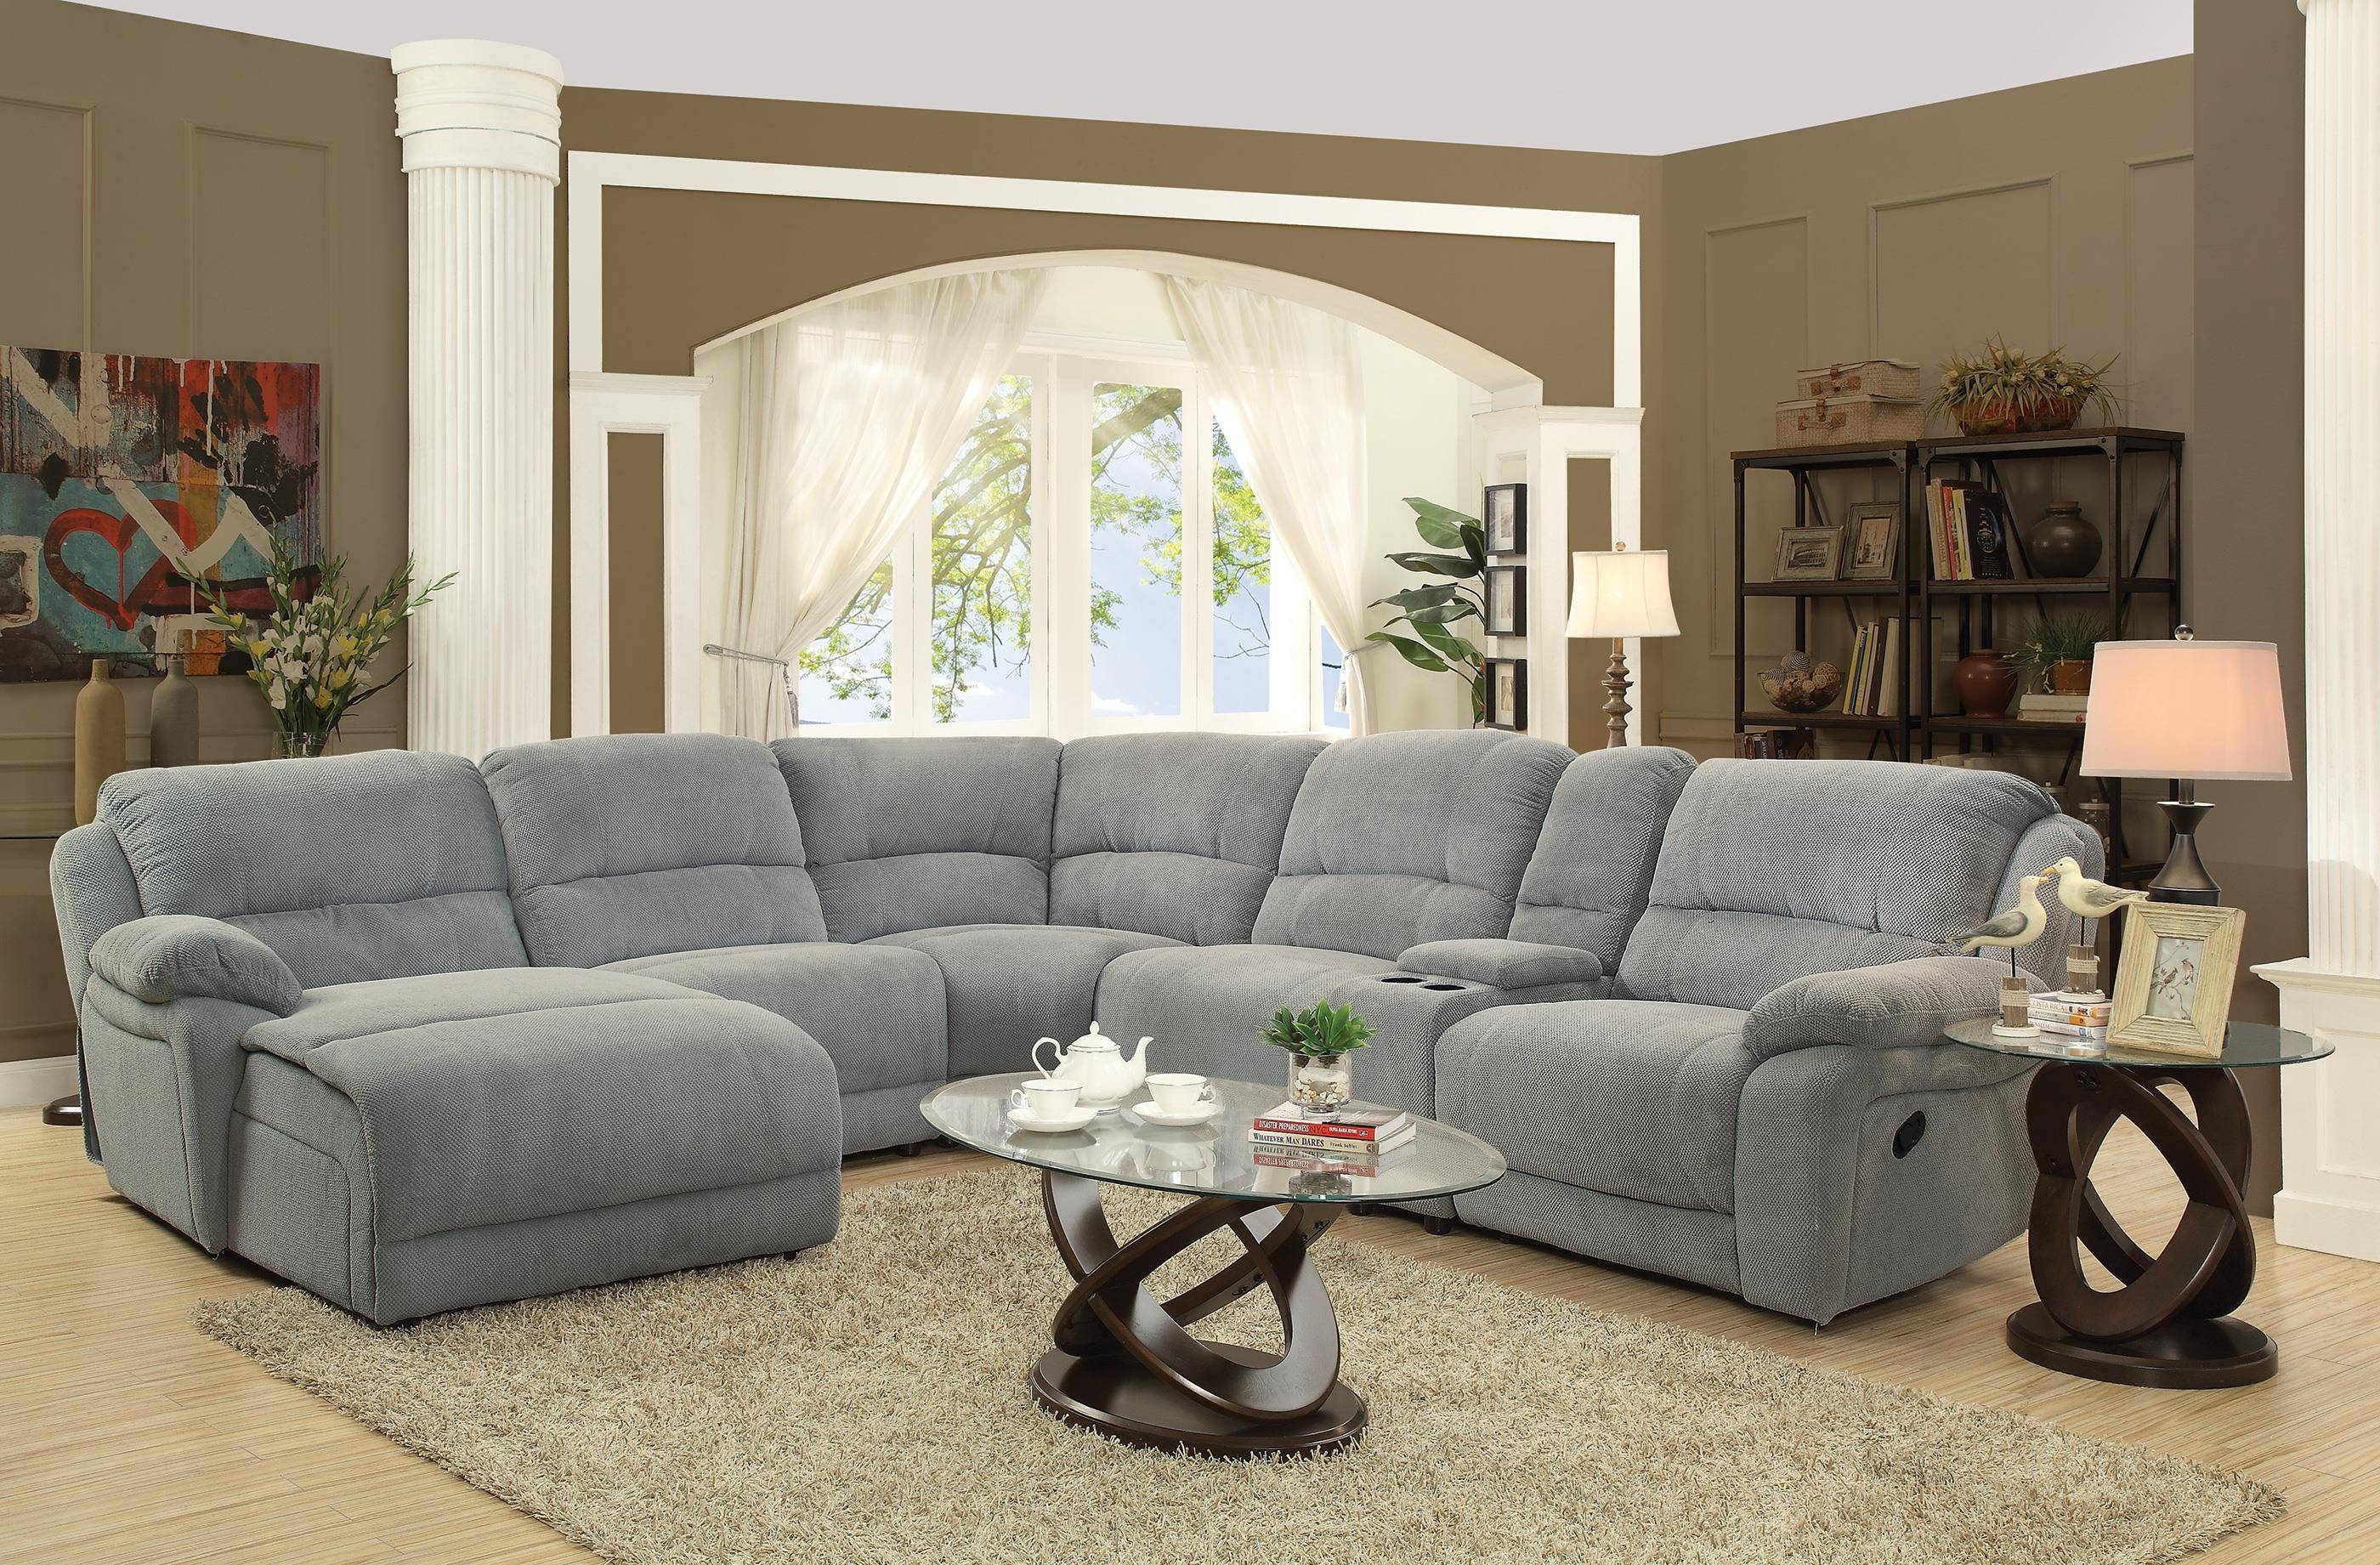 Living Room: Coaster Sectional | Chenille Sectional Sofas | Tufted intended for Chenille Sectional Sofas With Chaise (Image 11 of 15)